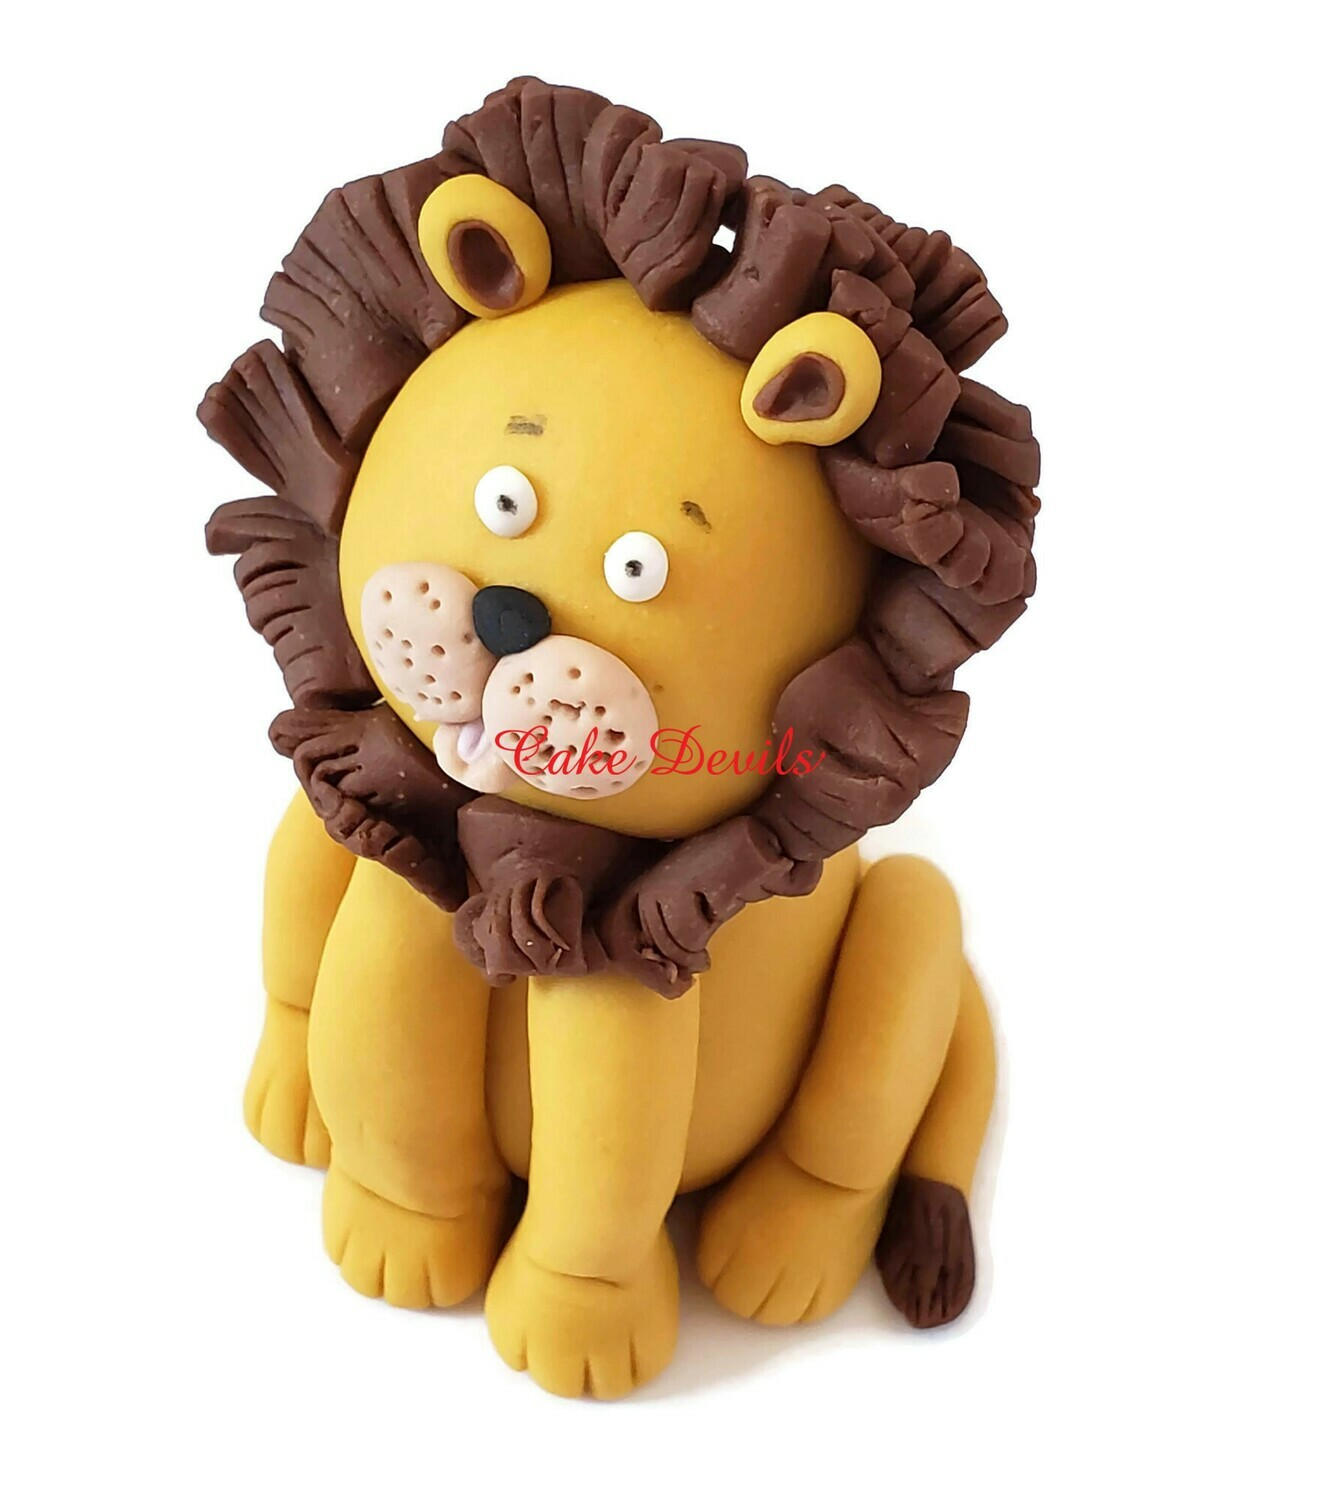 Fondant Lion, Lion Cake Topper, Birthday Party Cake, Lion Cake Decorations , handmade edible, Lion Birthday Party Supplies